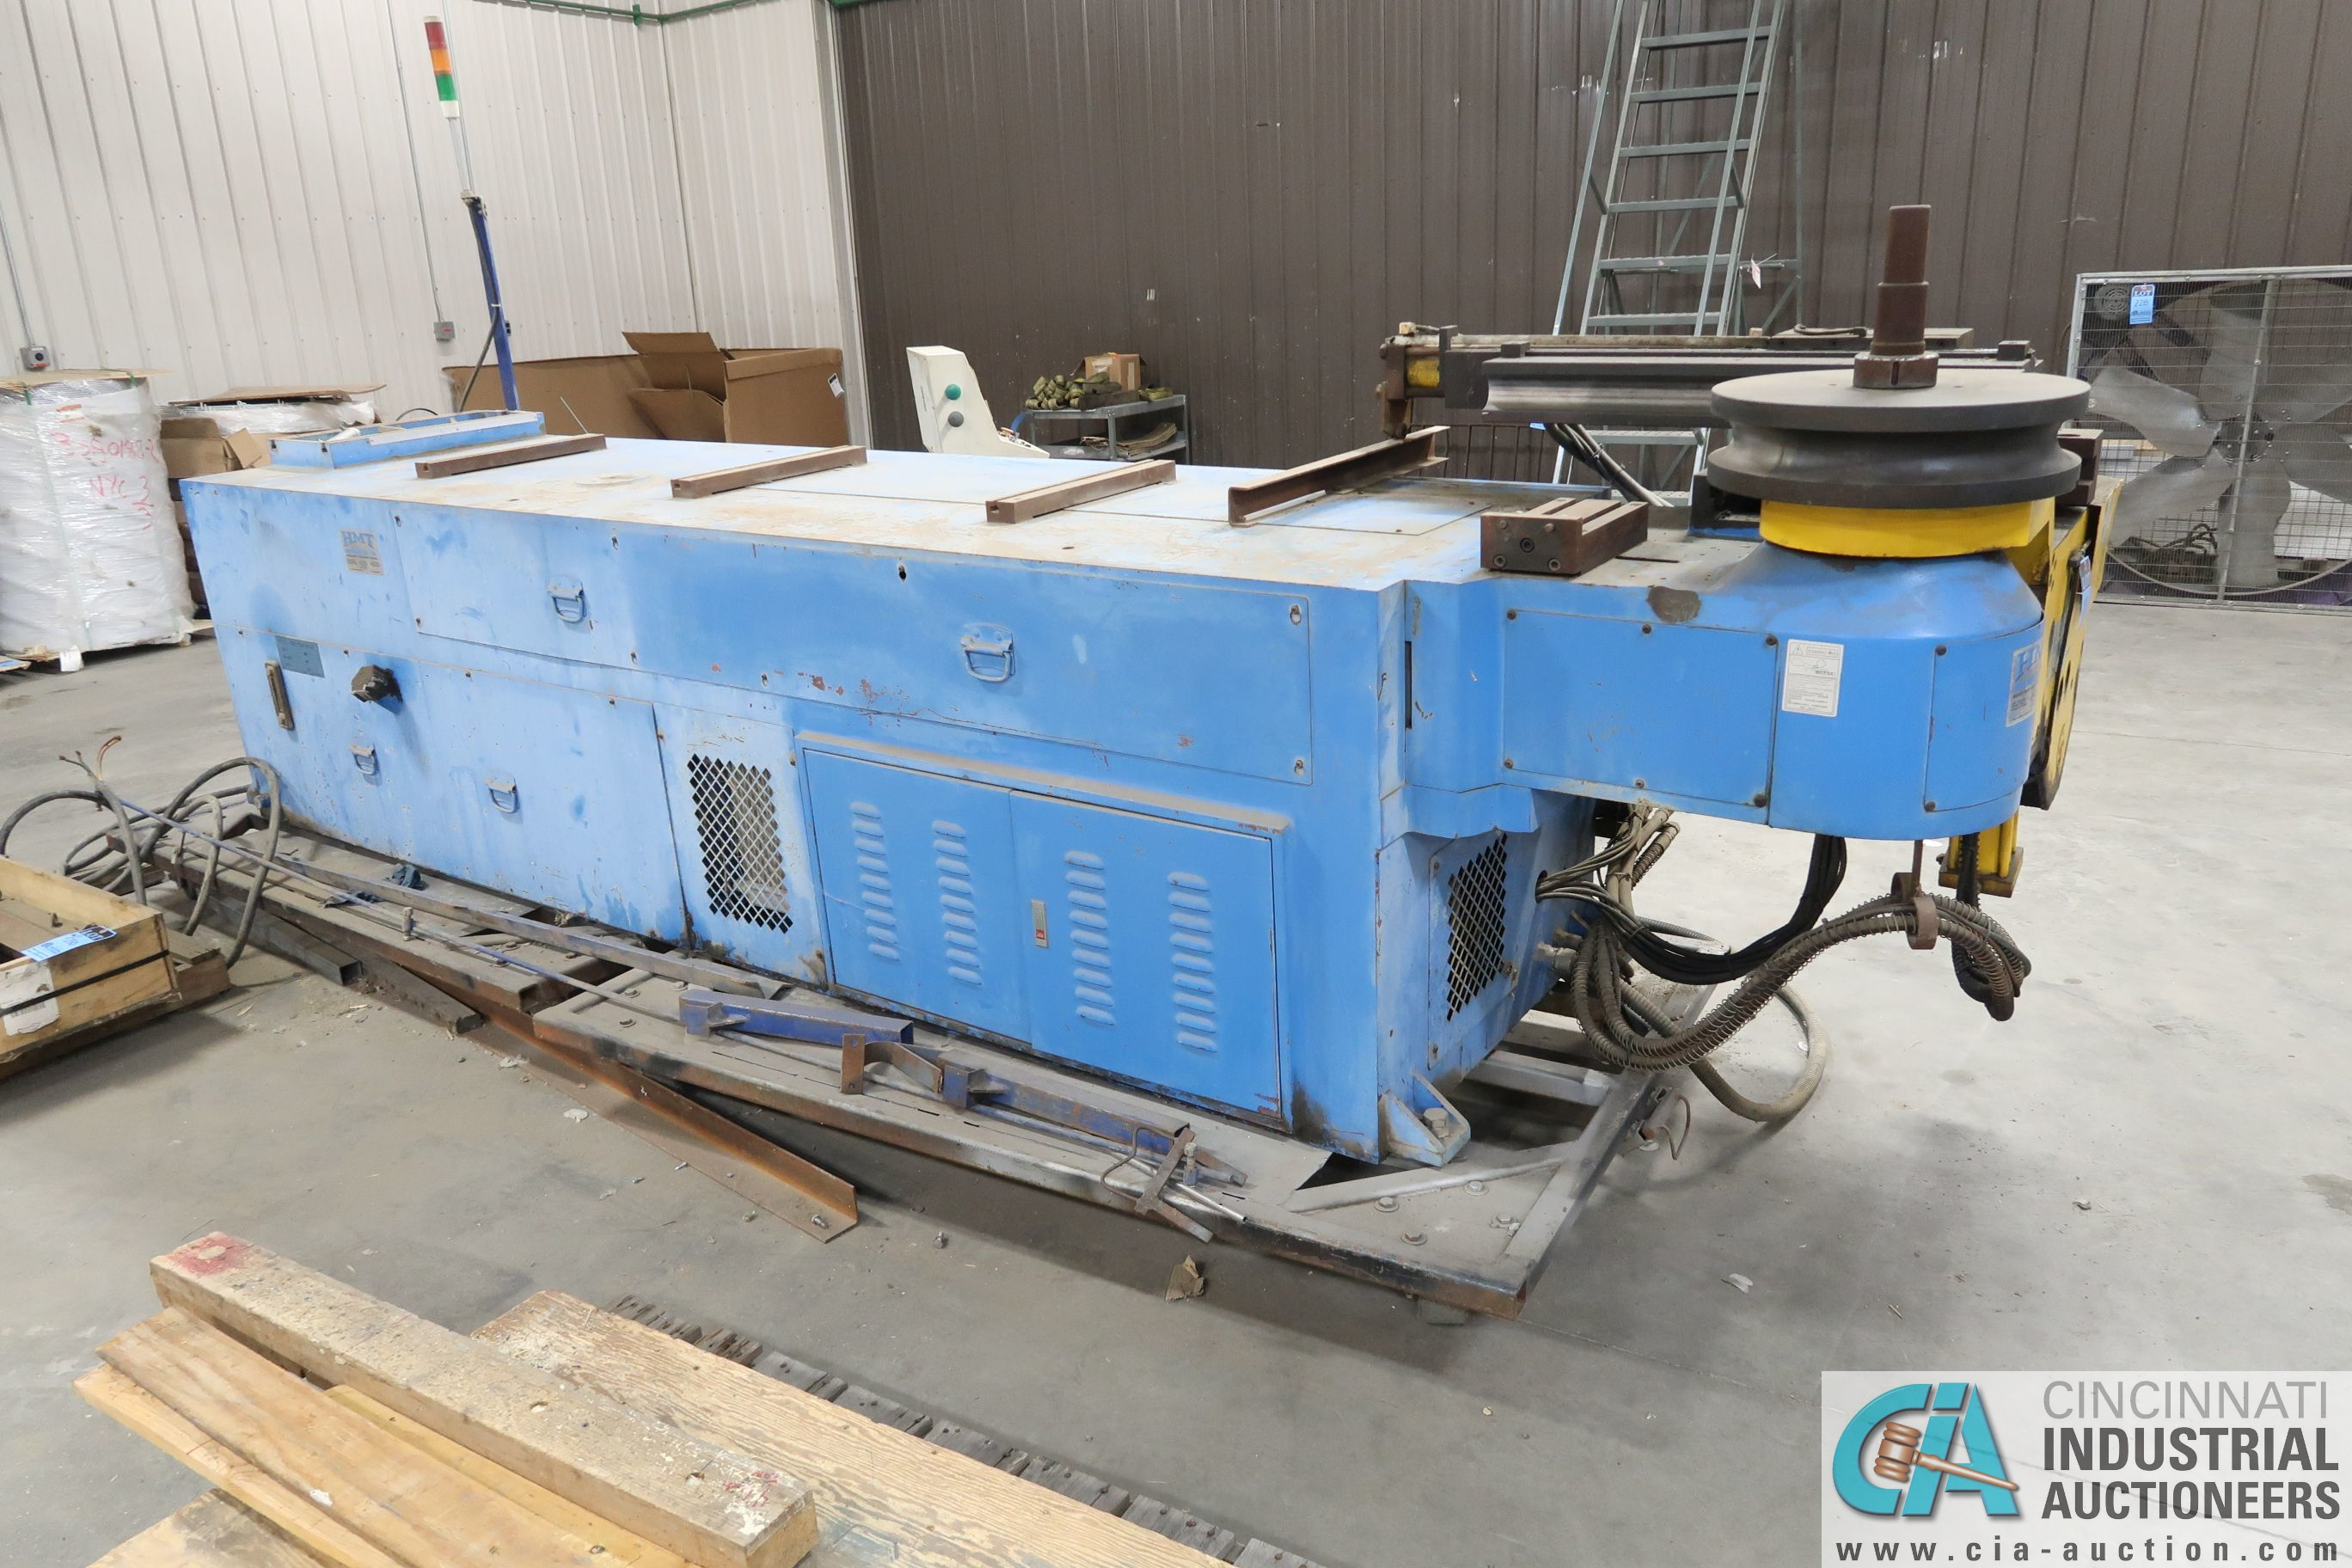 """4"""" HORN MODEL A100 TNCB CNC HYDRAULIC TUBE BENDER; S/N 080334-434B, CAPACITIES: 4"""" X .217 MILL STEEL - Image 10 of 11"""